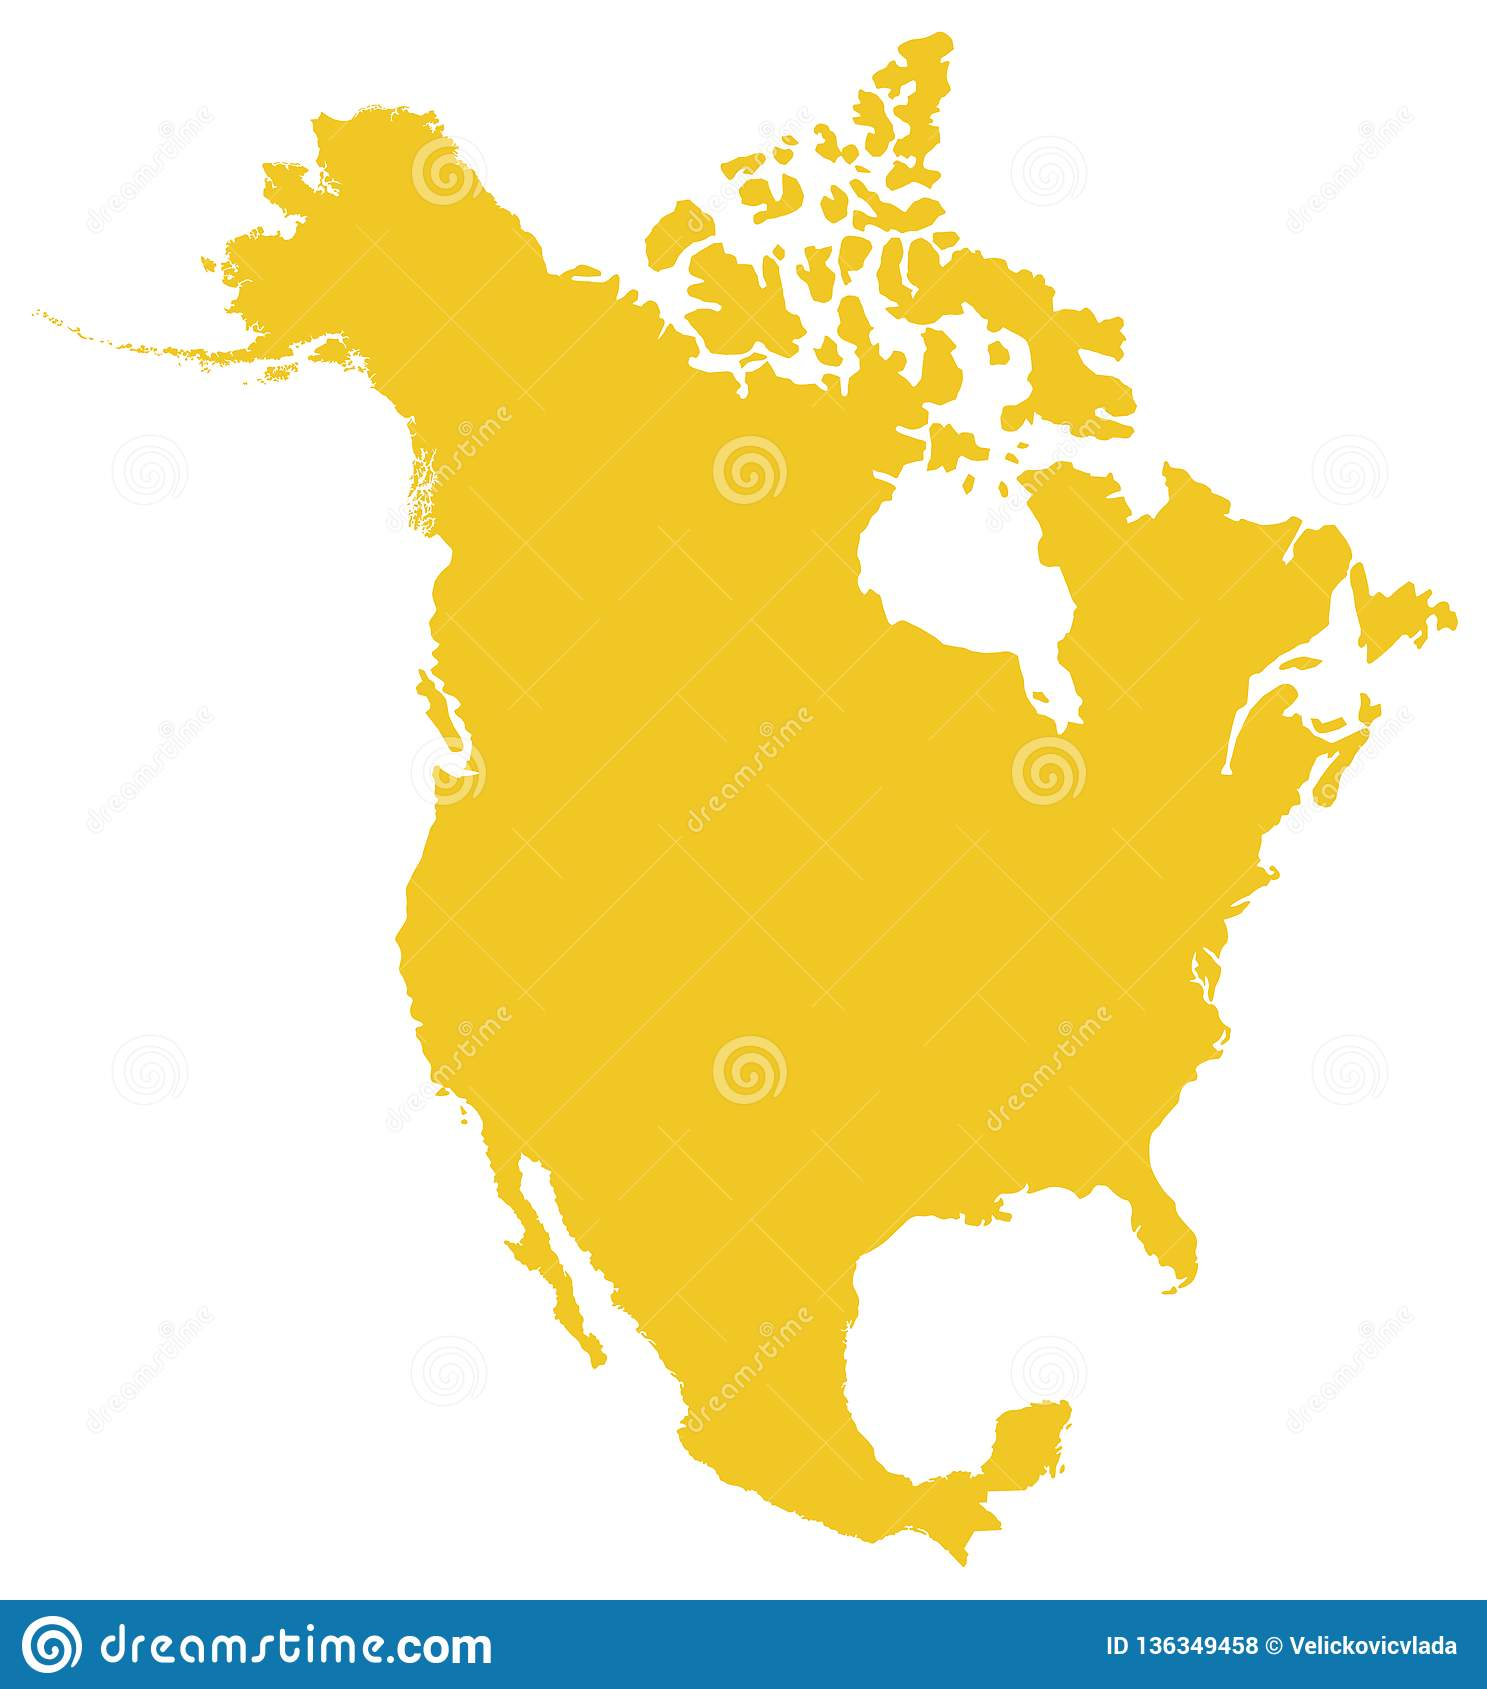 Western North America Map.North America Map Continent Stock Vector Illustration Of North